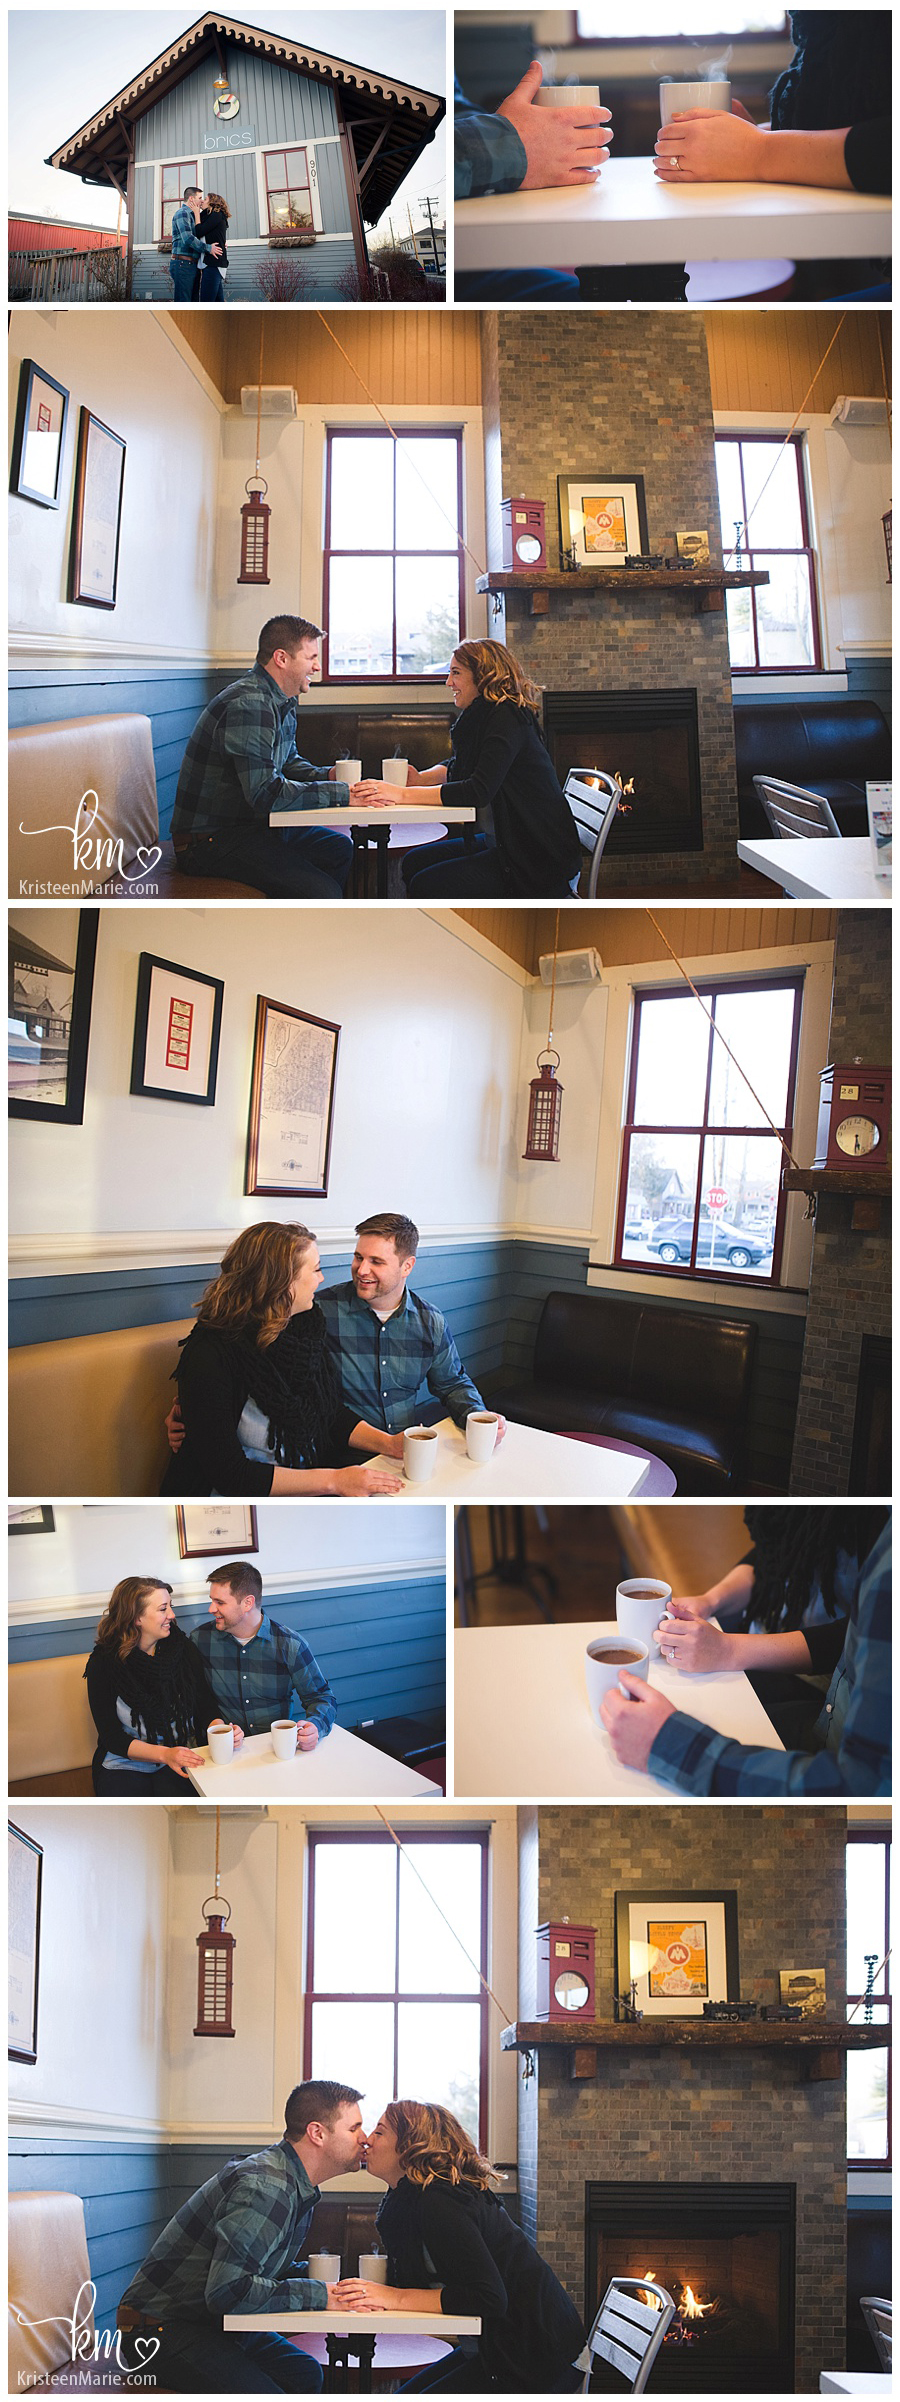 coffe-shop-engagement-photography-broadripple